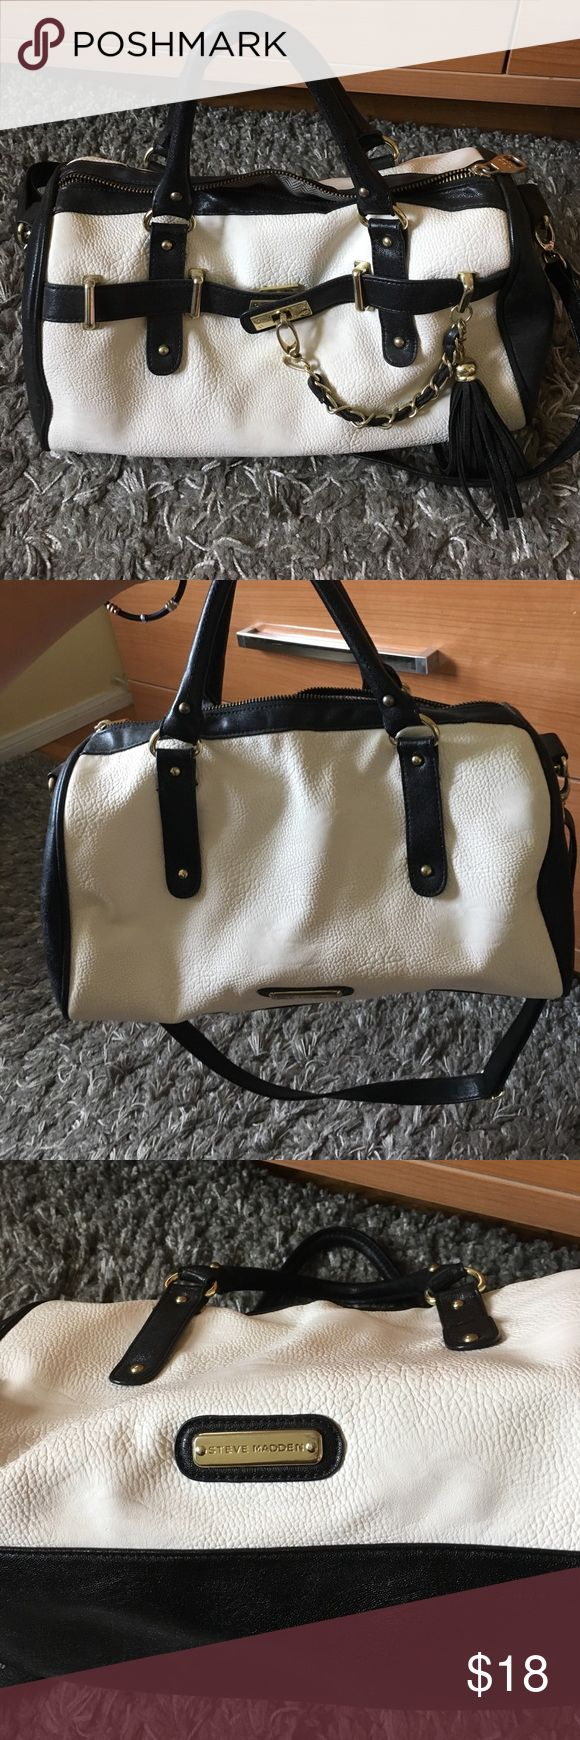 Steve Madden black/ off white barrel purse Authentic Steve Madden. Previously loved but still in good condition. Small to medium sized - Cute and will hold all of life's necessities 👜👓Selling cheap because the zipper get sticks sometimes but still an easy fix. Open to offers Steve Madden Bags Shoulder Bags